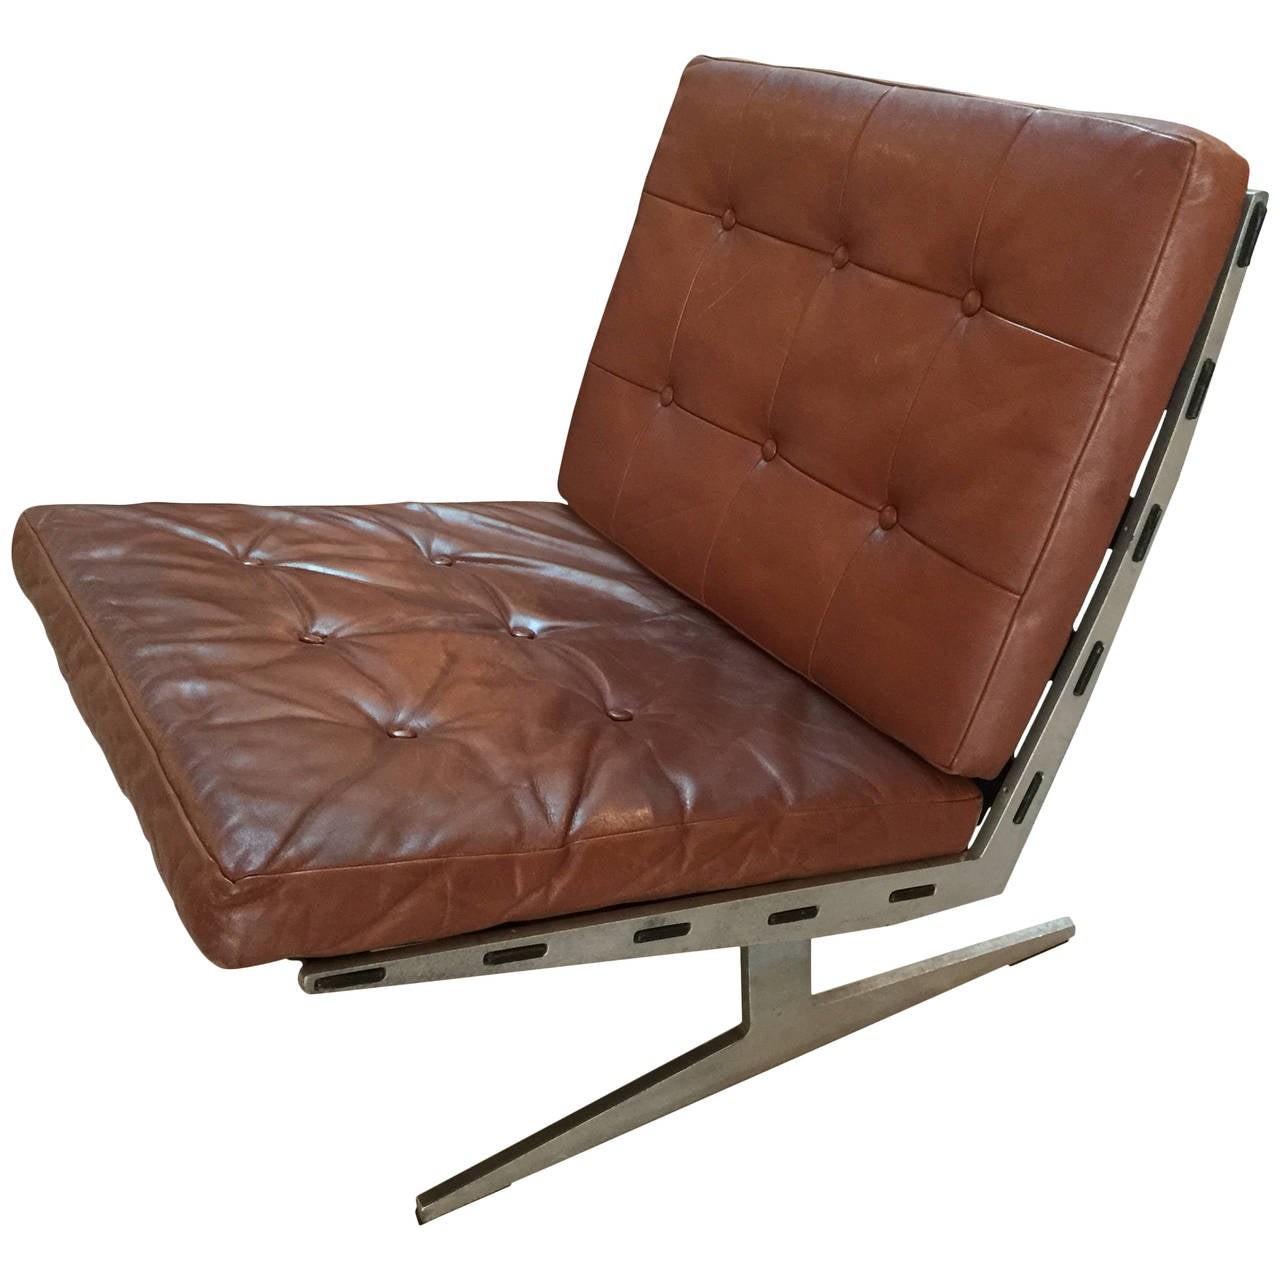 brown leather slipper chair universal fishing rod rest by paul leidersdorff at 1stdibs